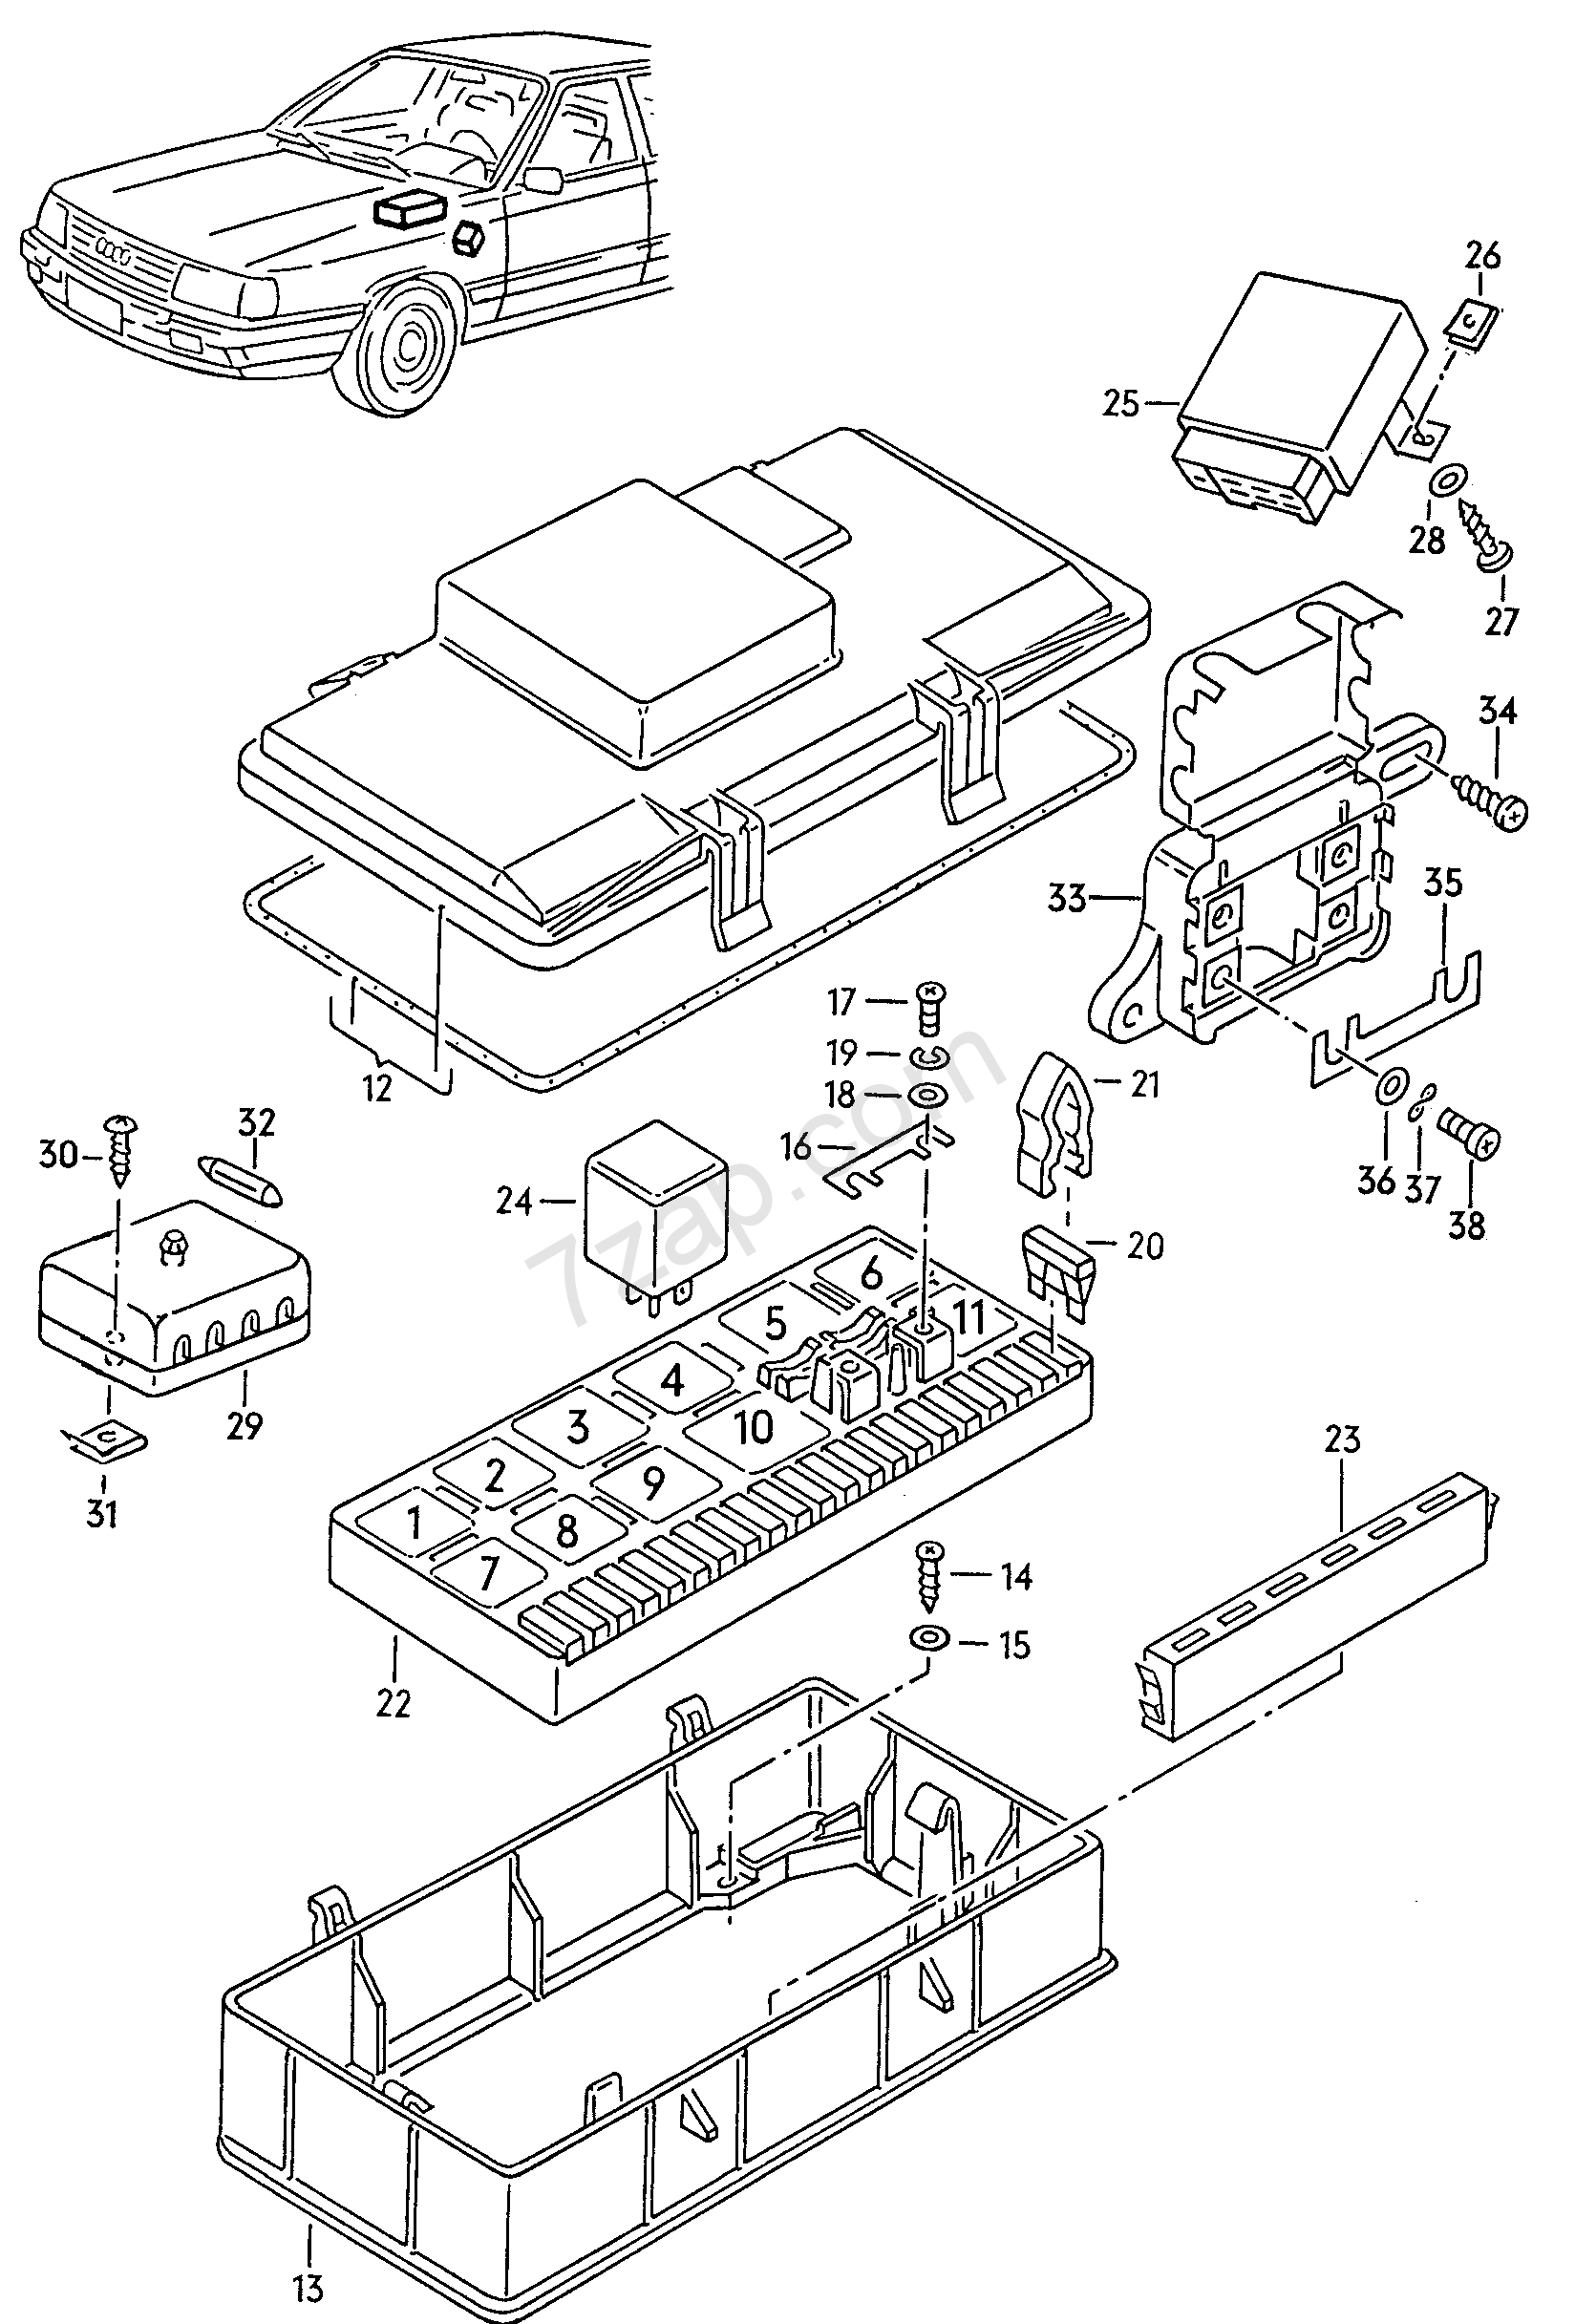 95 Mustang Gt Fuse Box Diagram as well Mercedes Benz Ml320 Engine Diagram likewise Mercedes Benz 2004 C230 Wiring Diagrams furthermore Ml Air Conditioner Wiring Diagrams Mercedesbenz Forum further 93 Mustang Ecm Wiring Diagram Get Free Image. on 2004 mercedes clk 320 fuse diagram